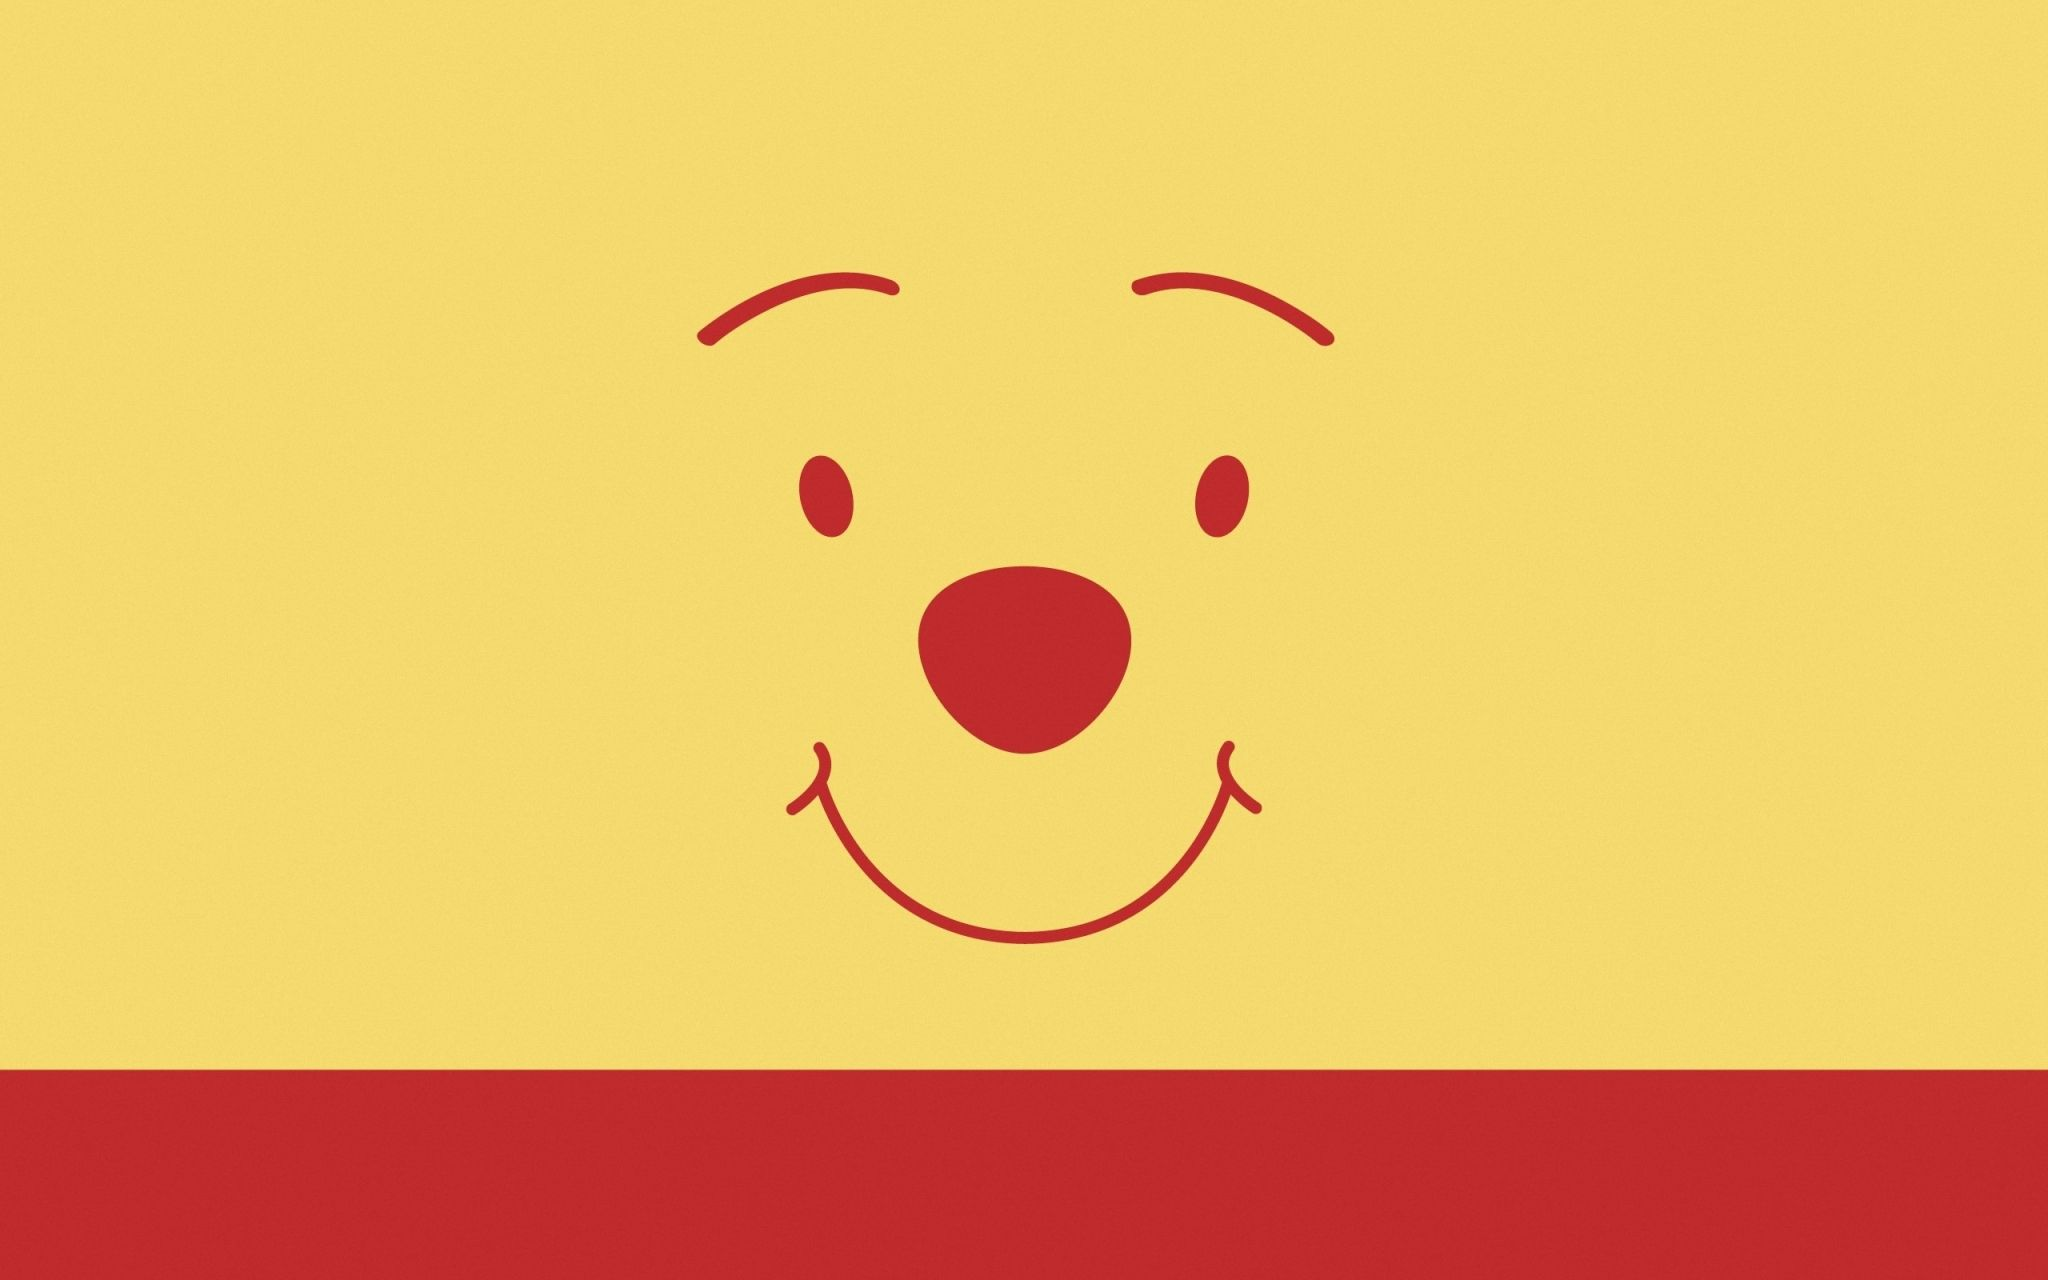 Winnie The Pooh Hd Wallpapers 1080p High Quality Bear Face Drawing Cartoon Wallpaper Pooh